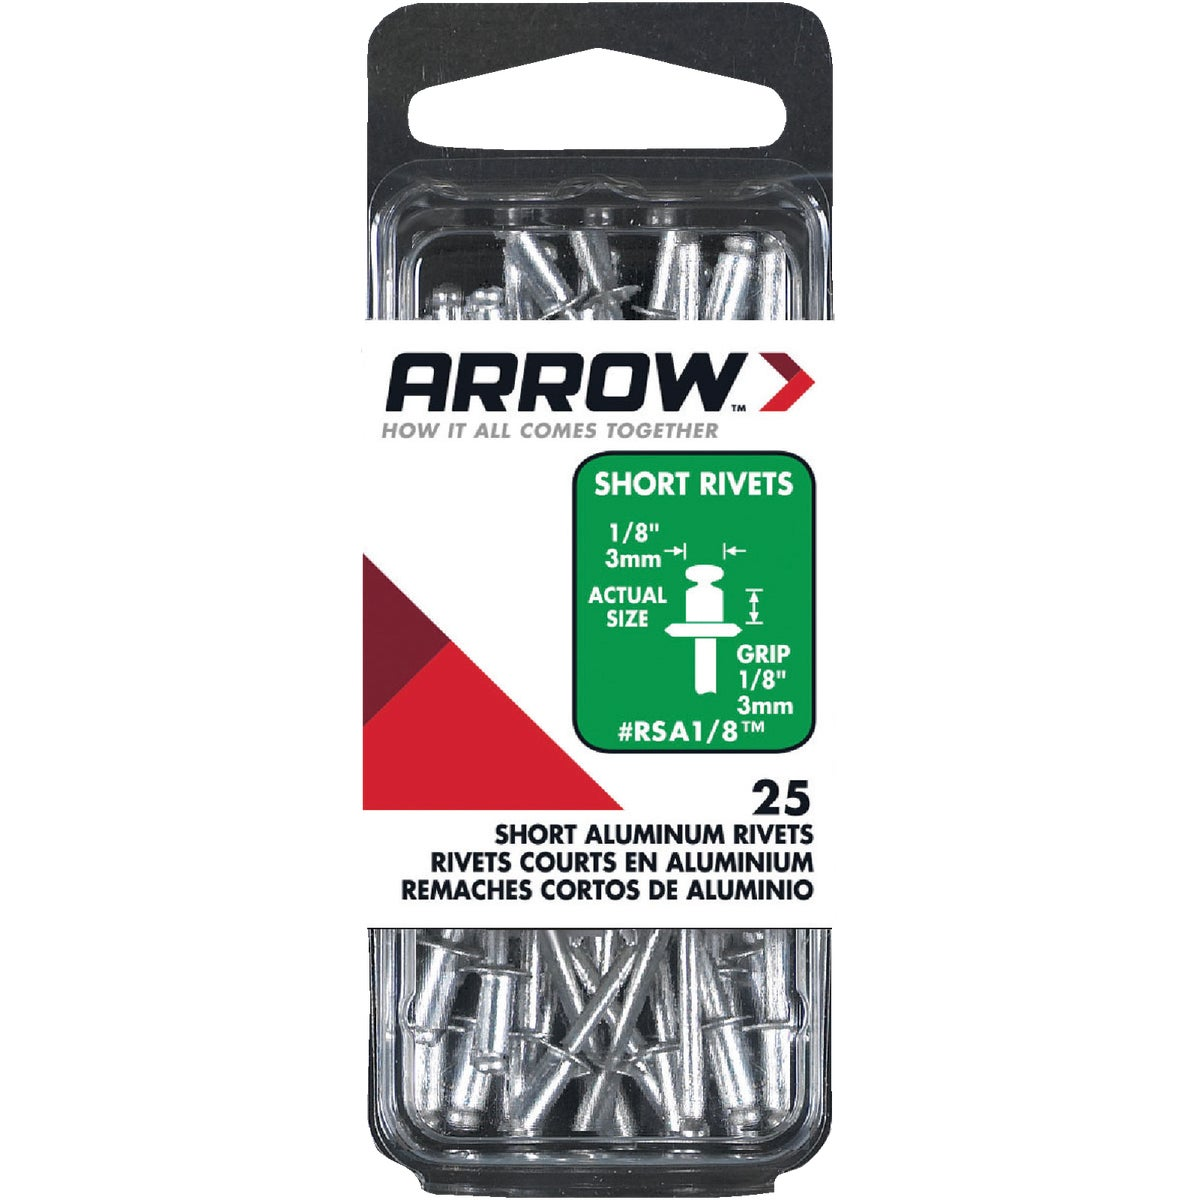 1/8X1/8 ALUM RIVET - RSA1/8 by Arrow Fastener Co